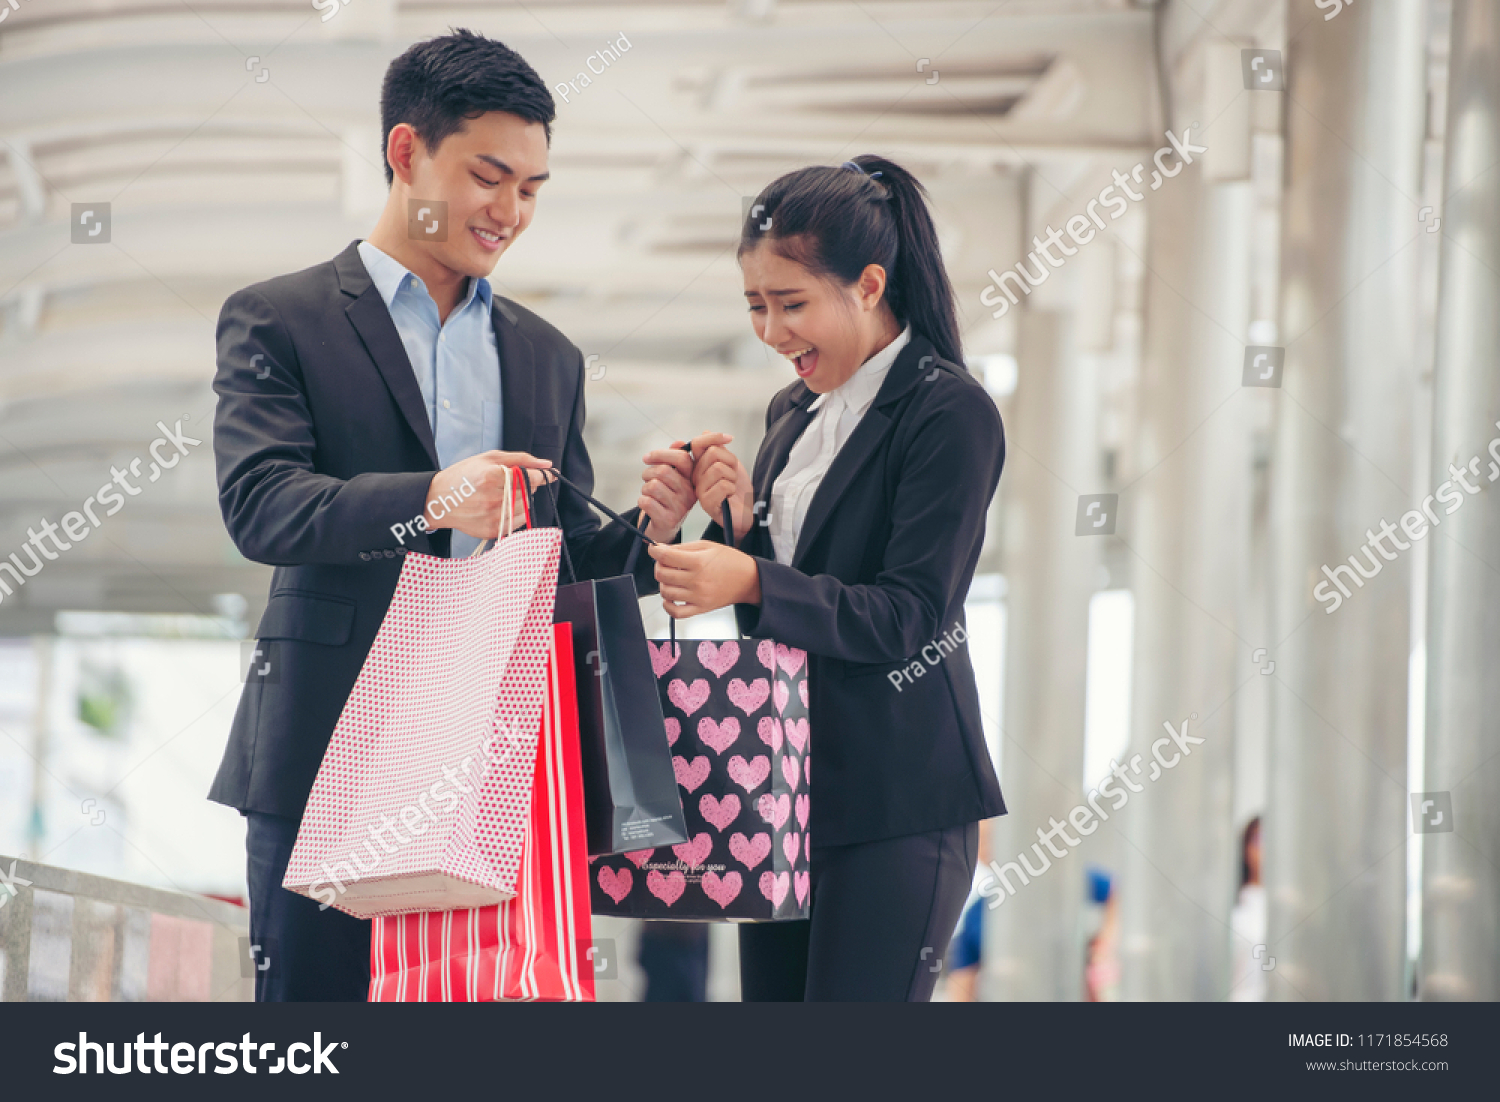 37afbd8351 Shopaholic and lifestyle concept.Asian shopaholic woman shopping at  department store,Happy Couple of.